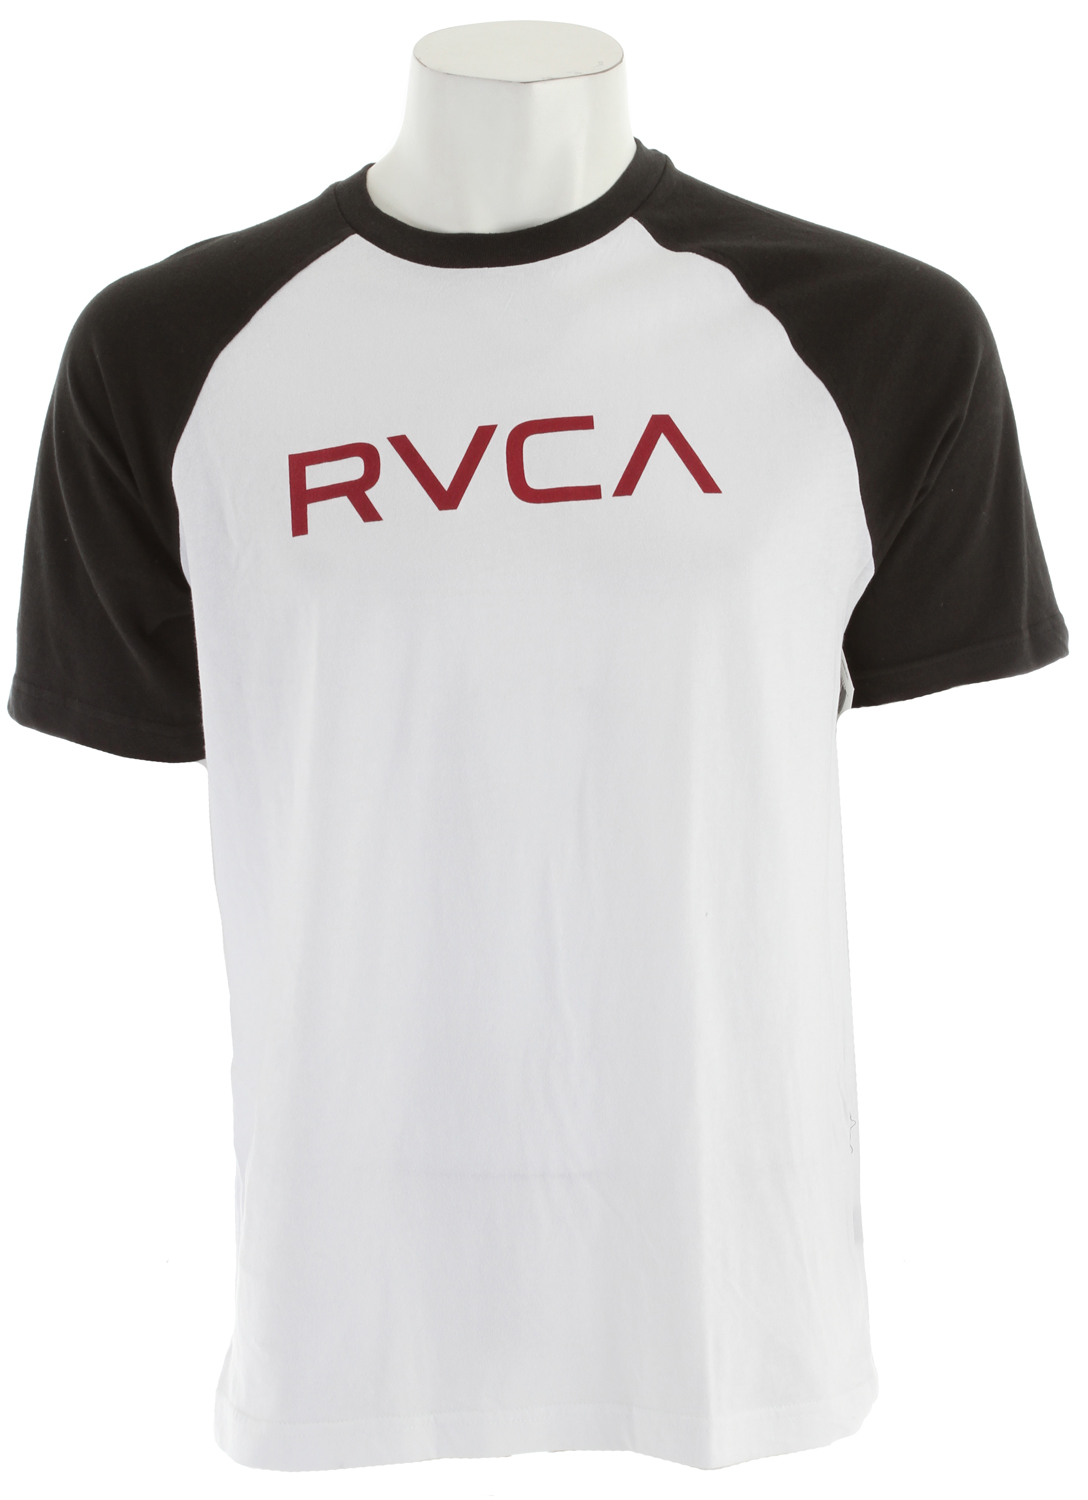 Sports Key Features of The RVCA Big RVCA Raglan Shirt White/Black: Regular Fit Crew Neck Raglan 30/1 100% cotton baseball raglan Front screenprint and screened inside neck - $32.00